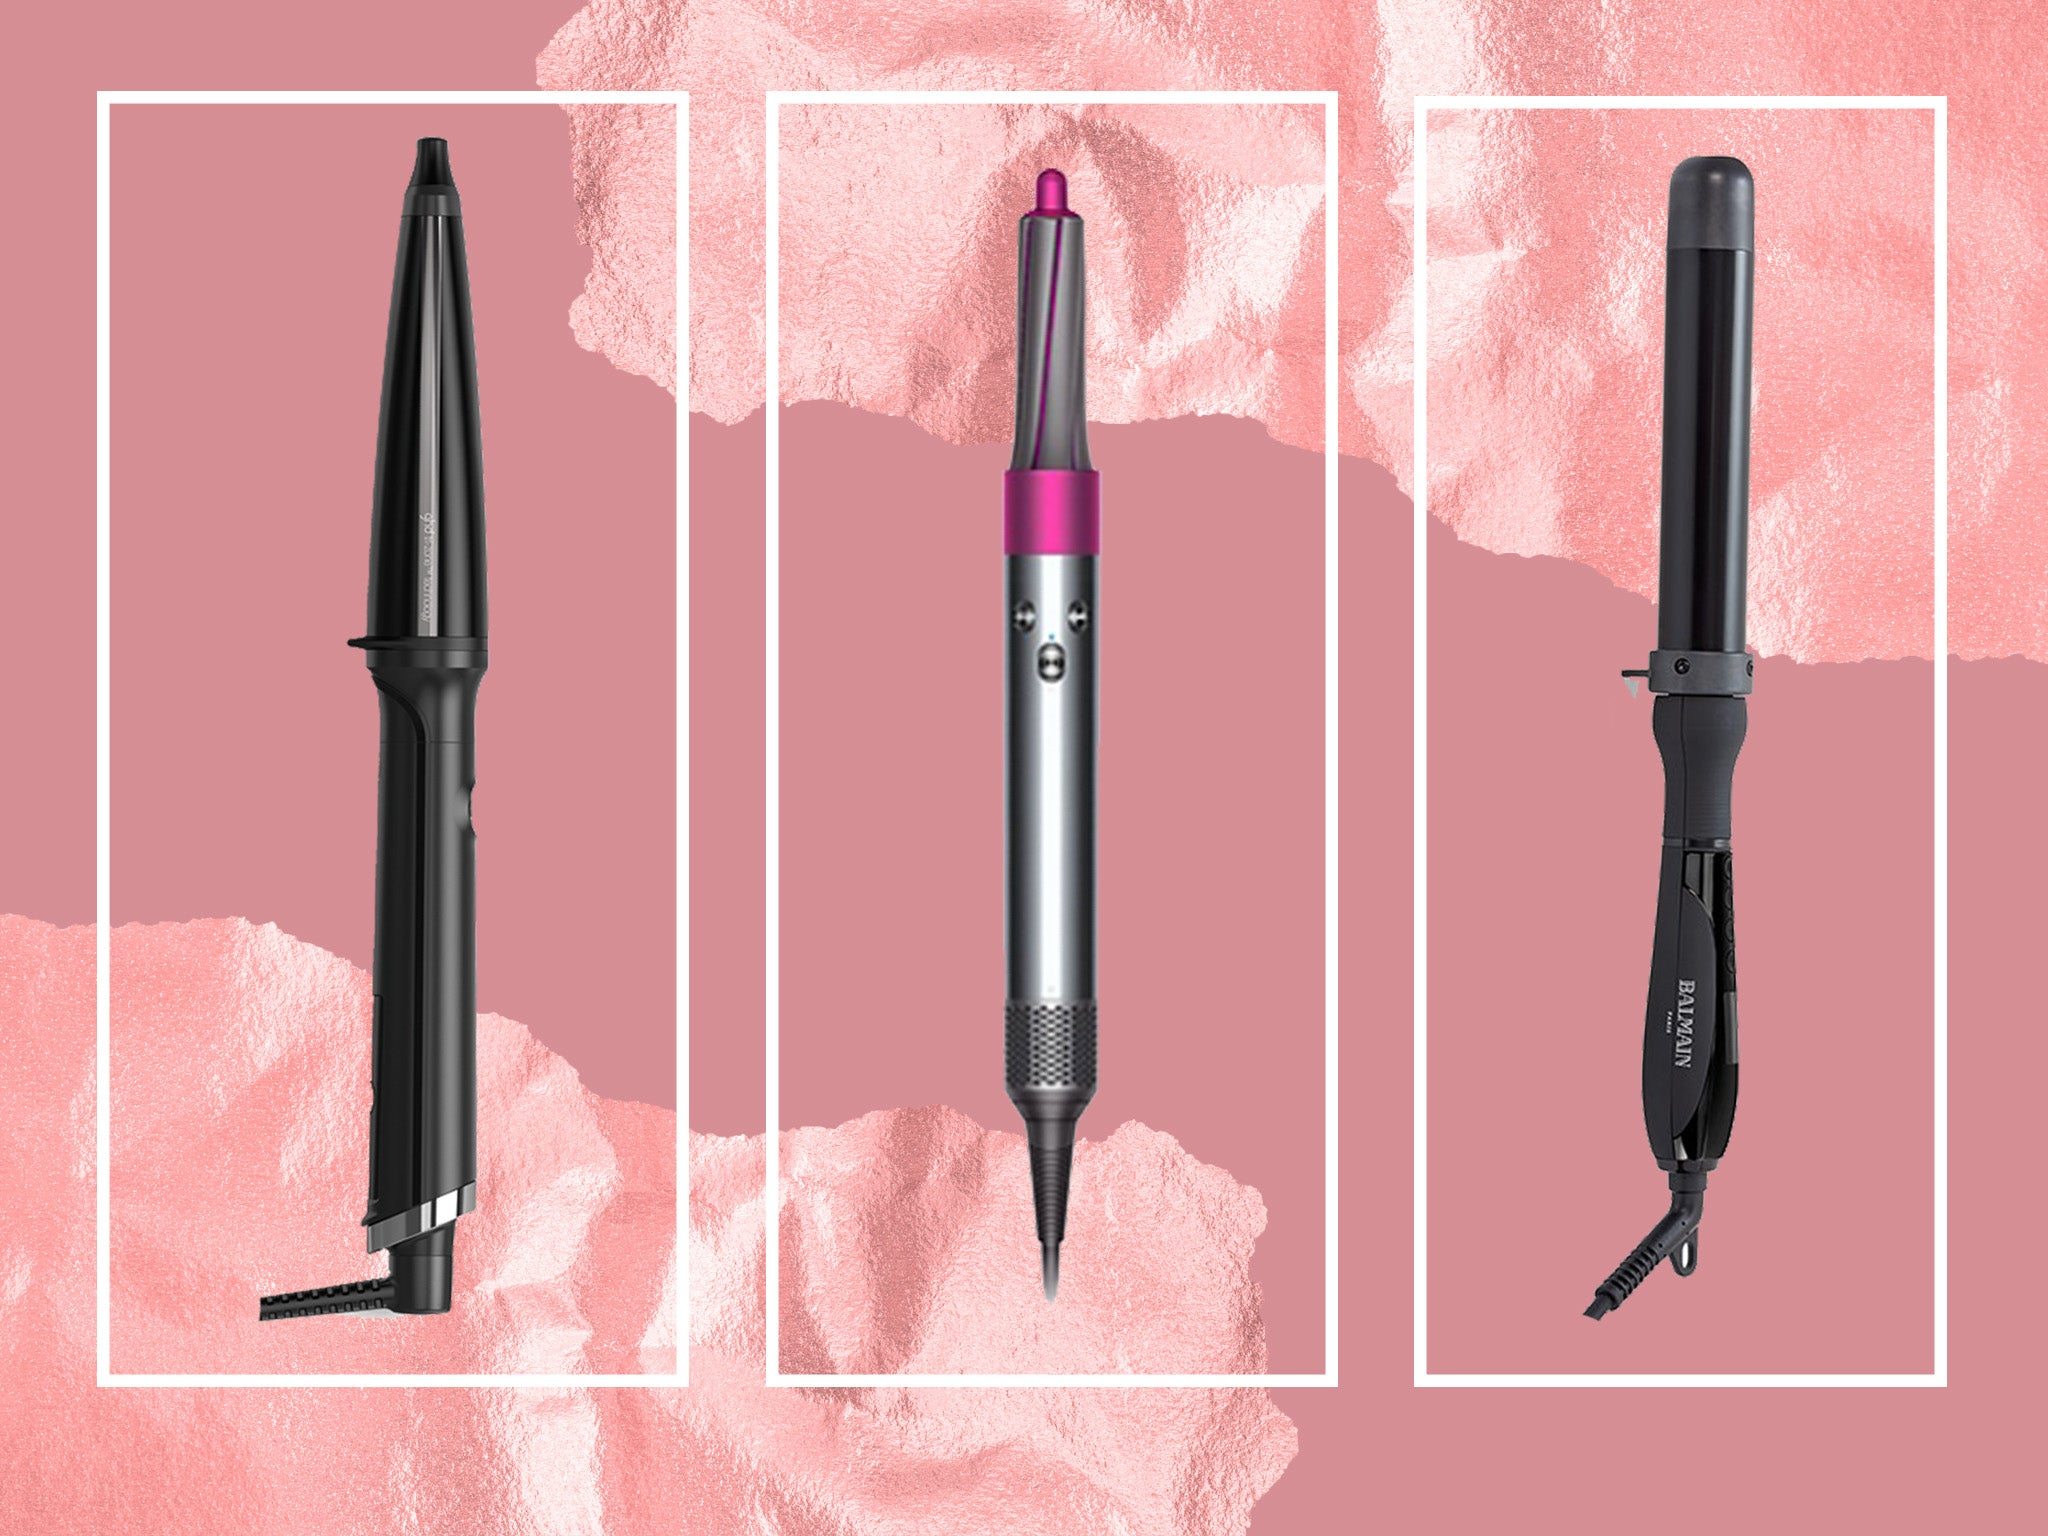 Best curling tongs and wands for every kind of hair style